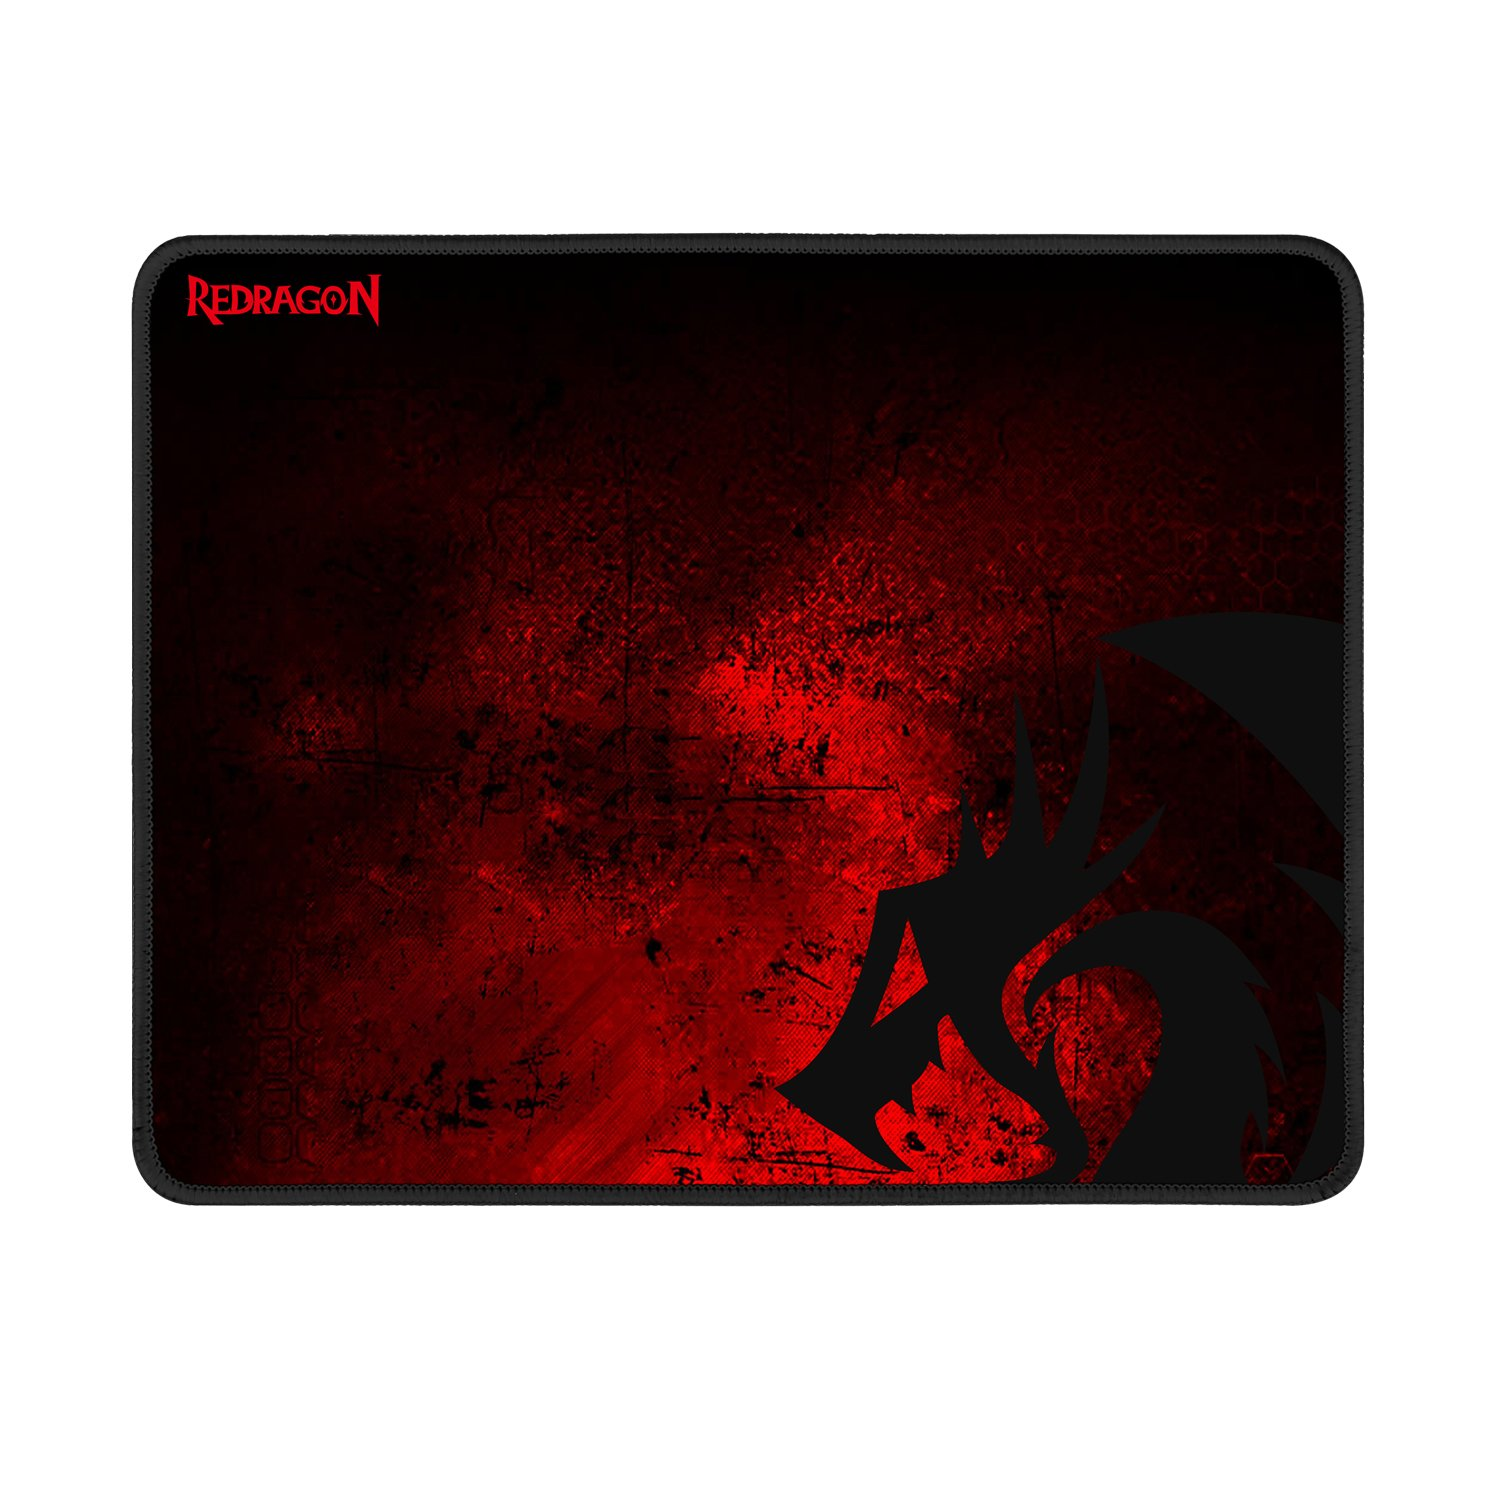 Mouse Pad Gaming Redragon 33 x 26 cm (xmp) (JR7L)